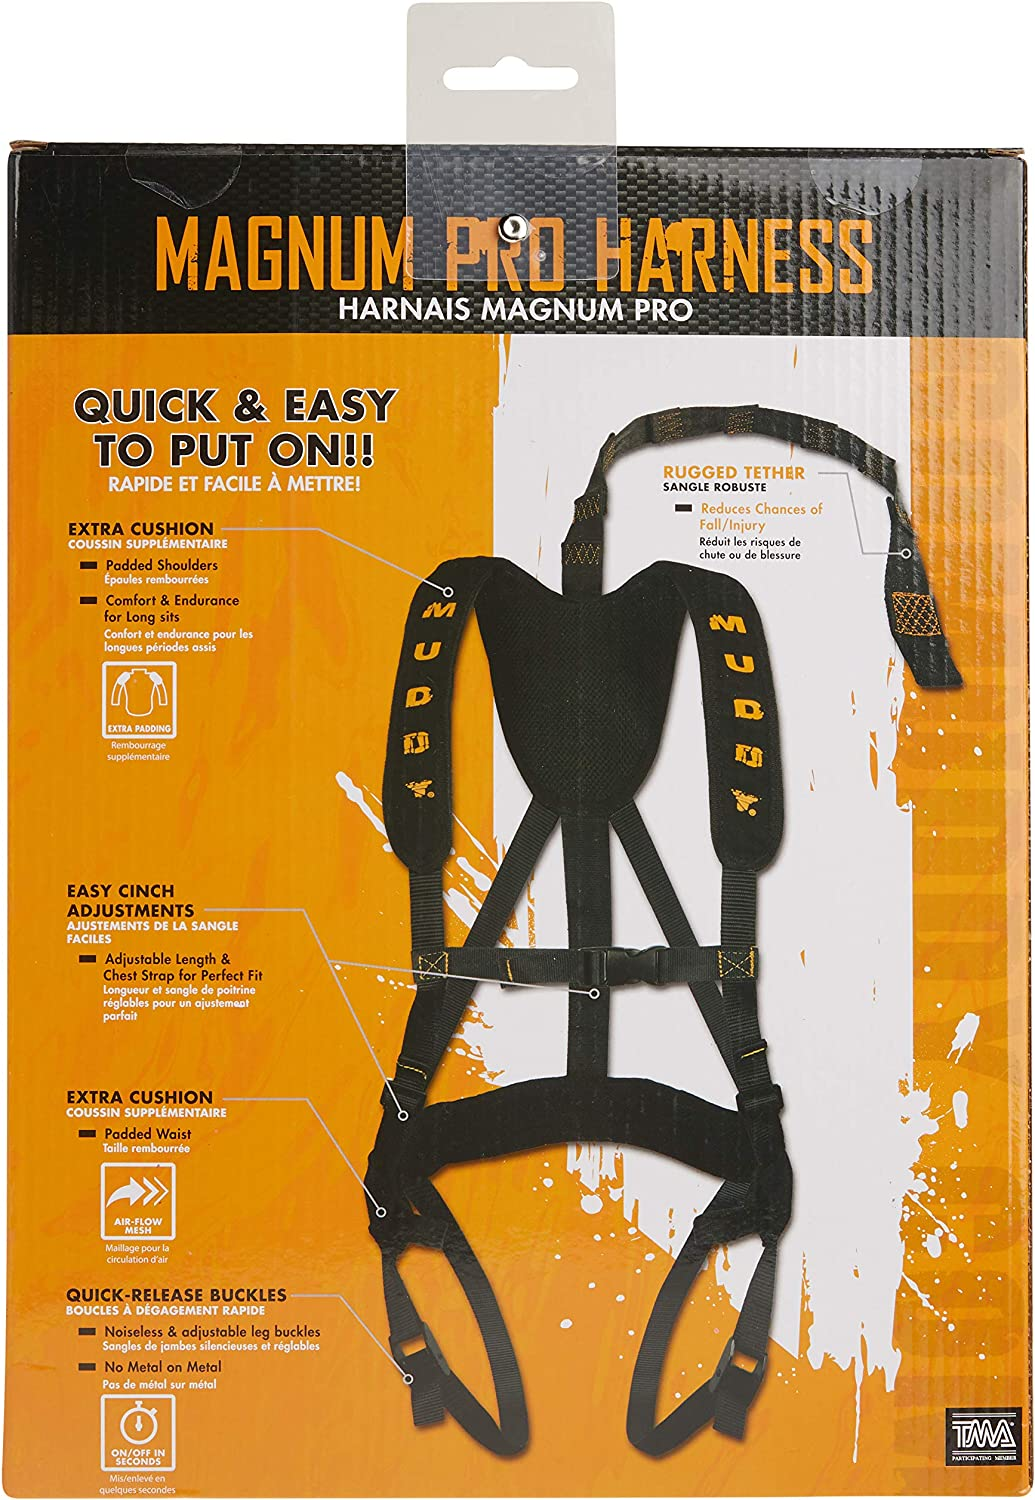 Muddy Magnum Pro Harness : Sports & Outdoors